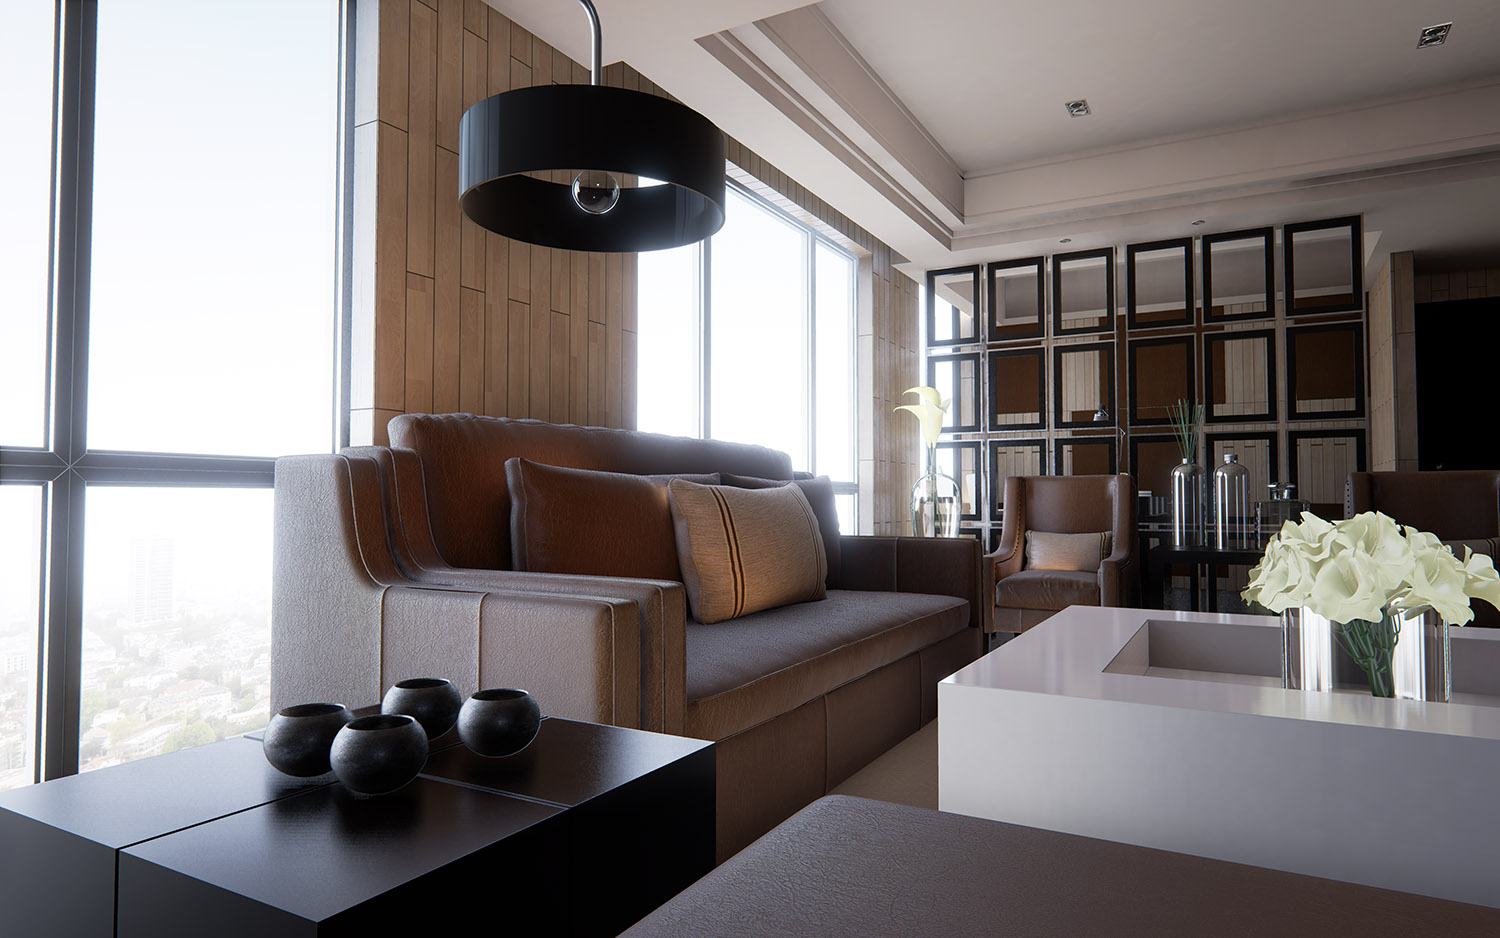 Exterior and interior scenes made in unreal engine 4 for Unity 3d room design